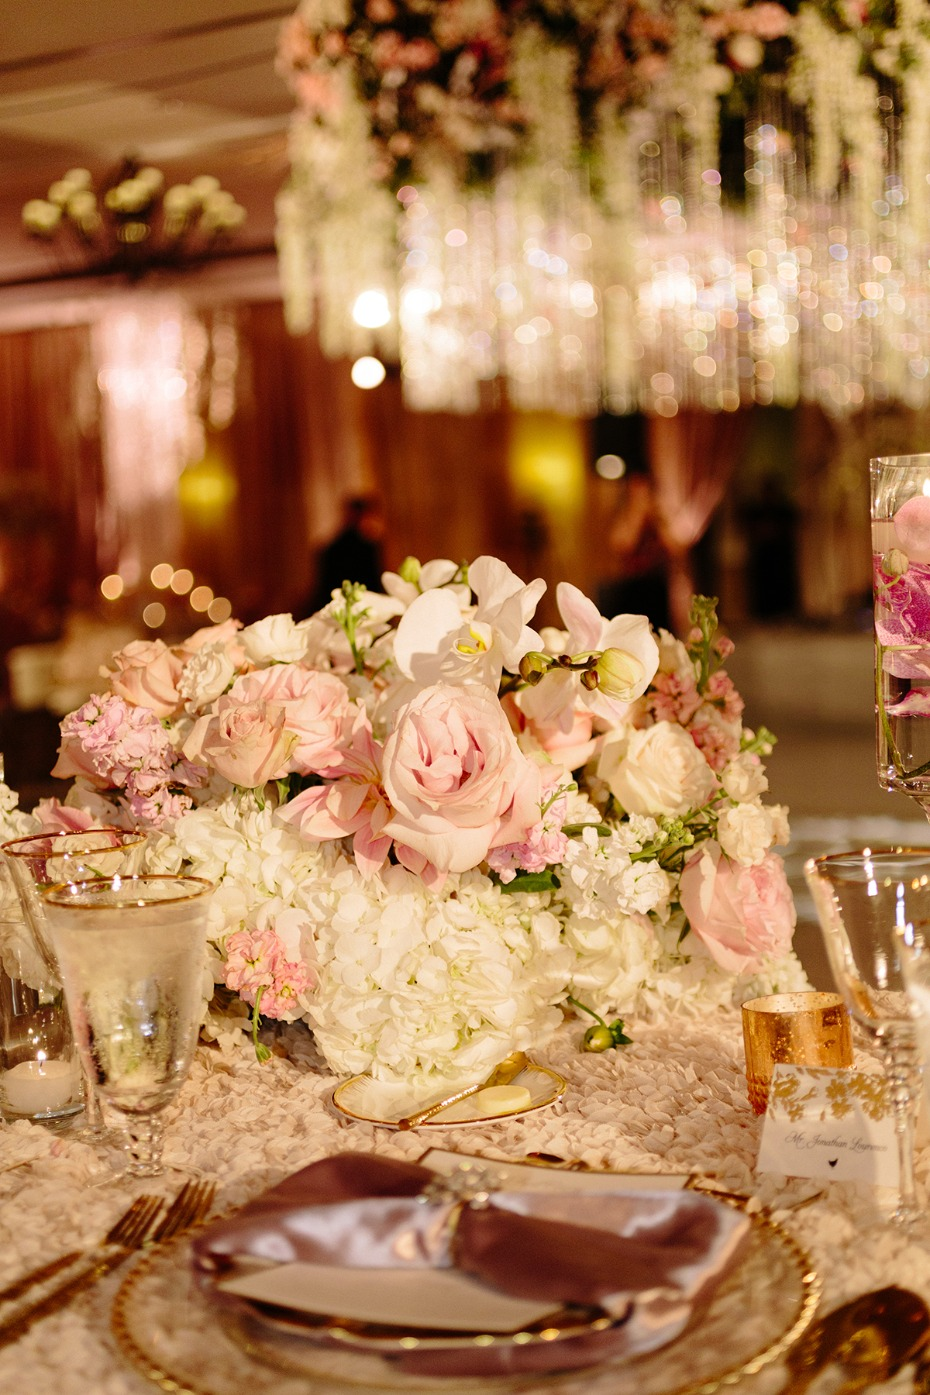 Glamorous reception decor in blush and gold